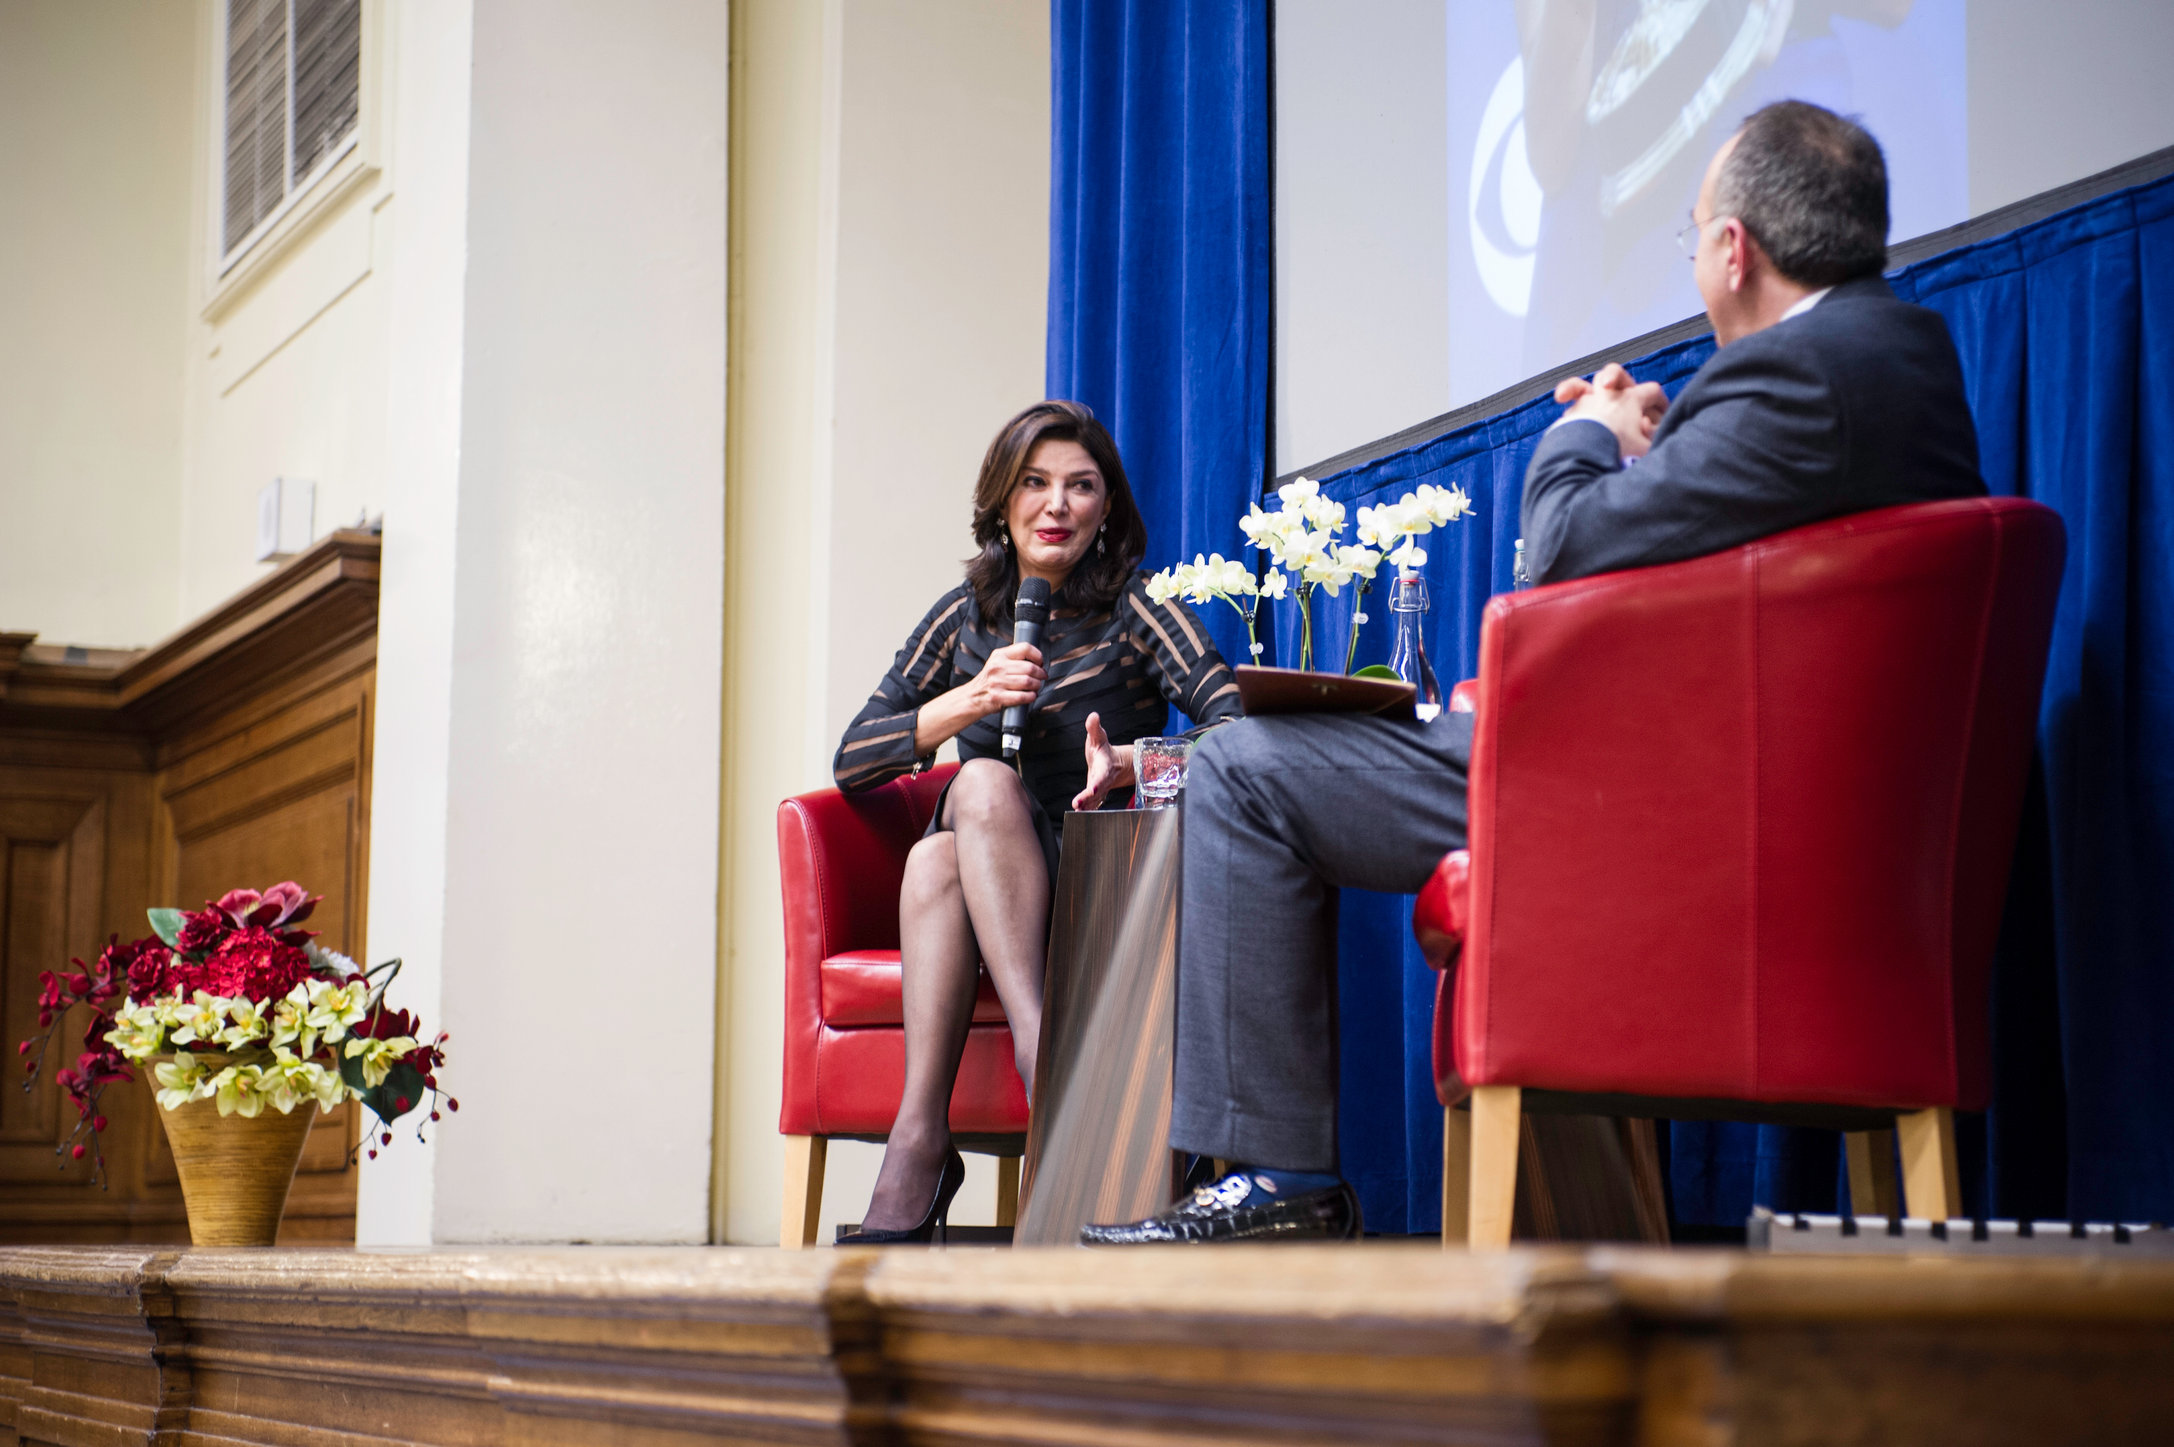 Ludovic_Robert_Photographer_Aneveningwith_Shohreh_Aghdashloo_November_2013-20131129-0147.jpg